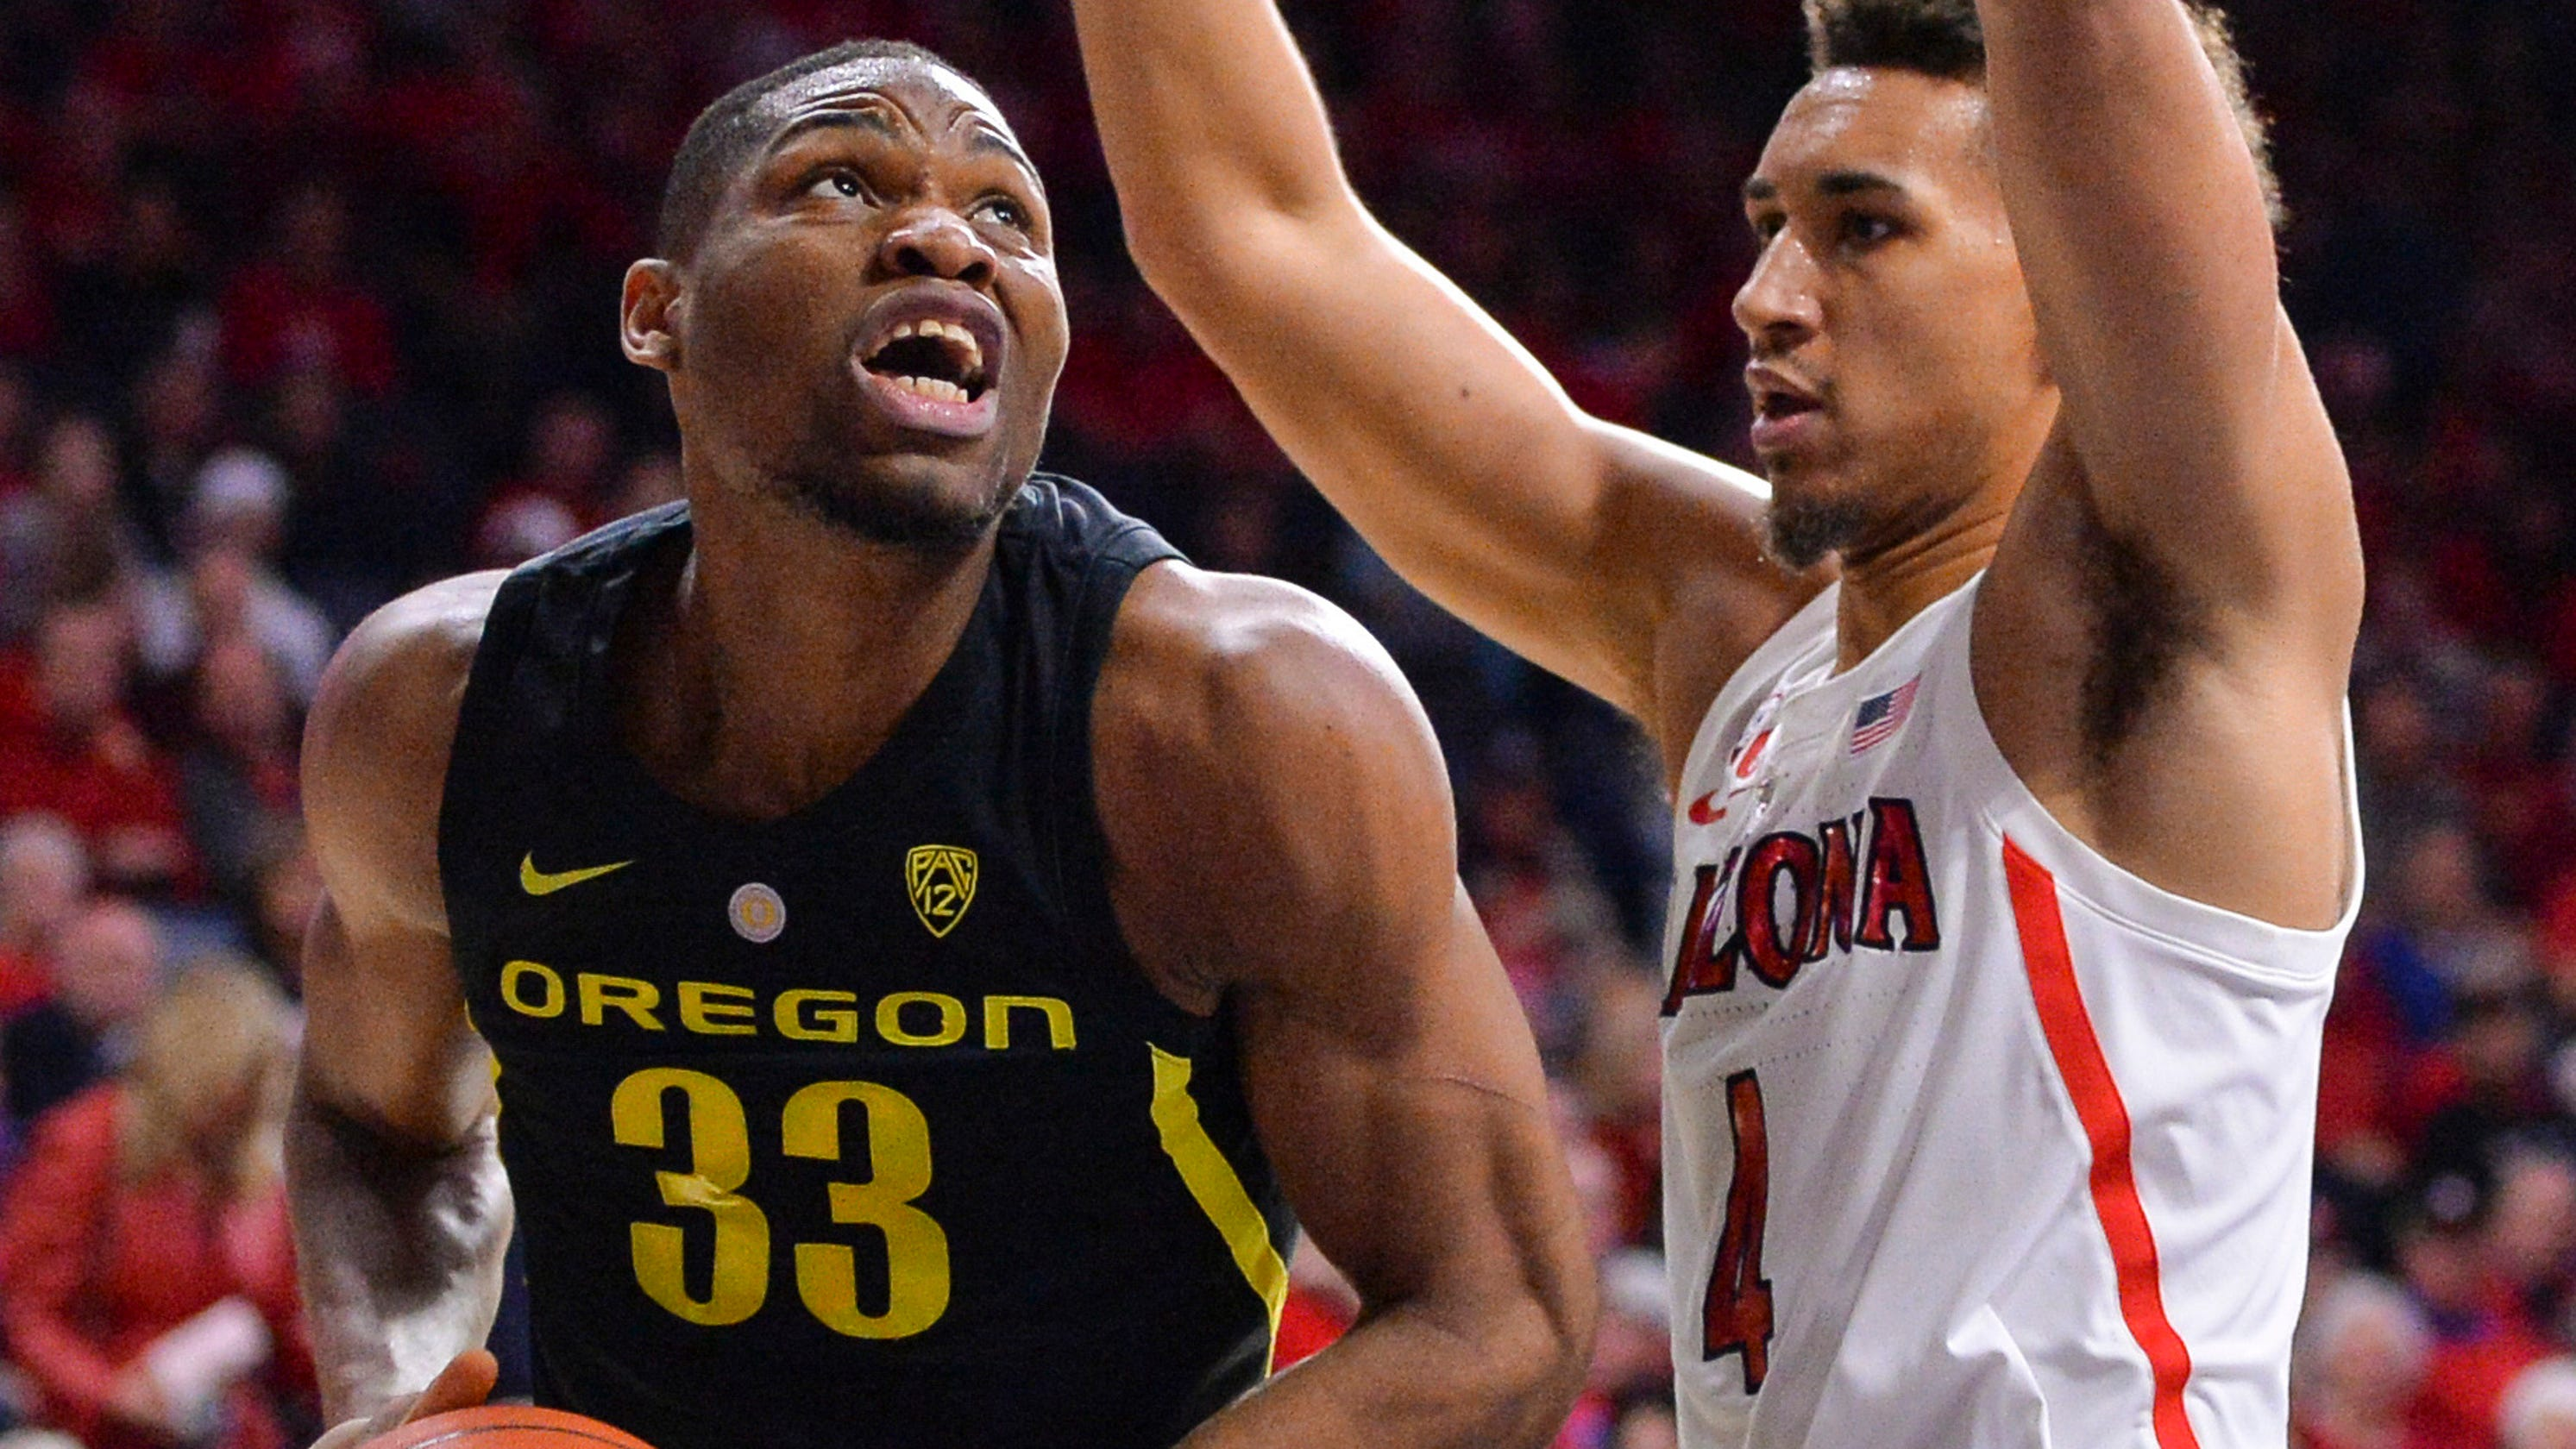 Oregon was in danger of missing the NCAA tournament. An 'accident' changed everything